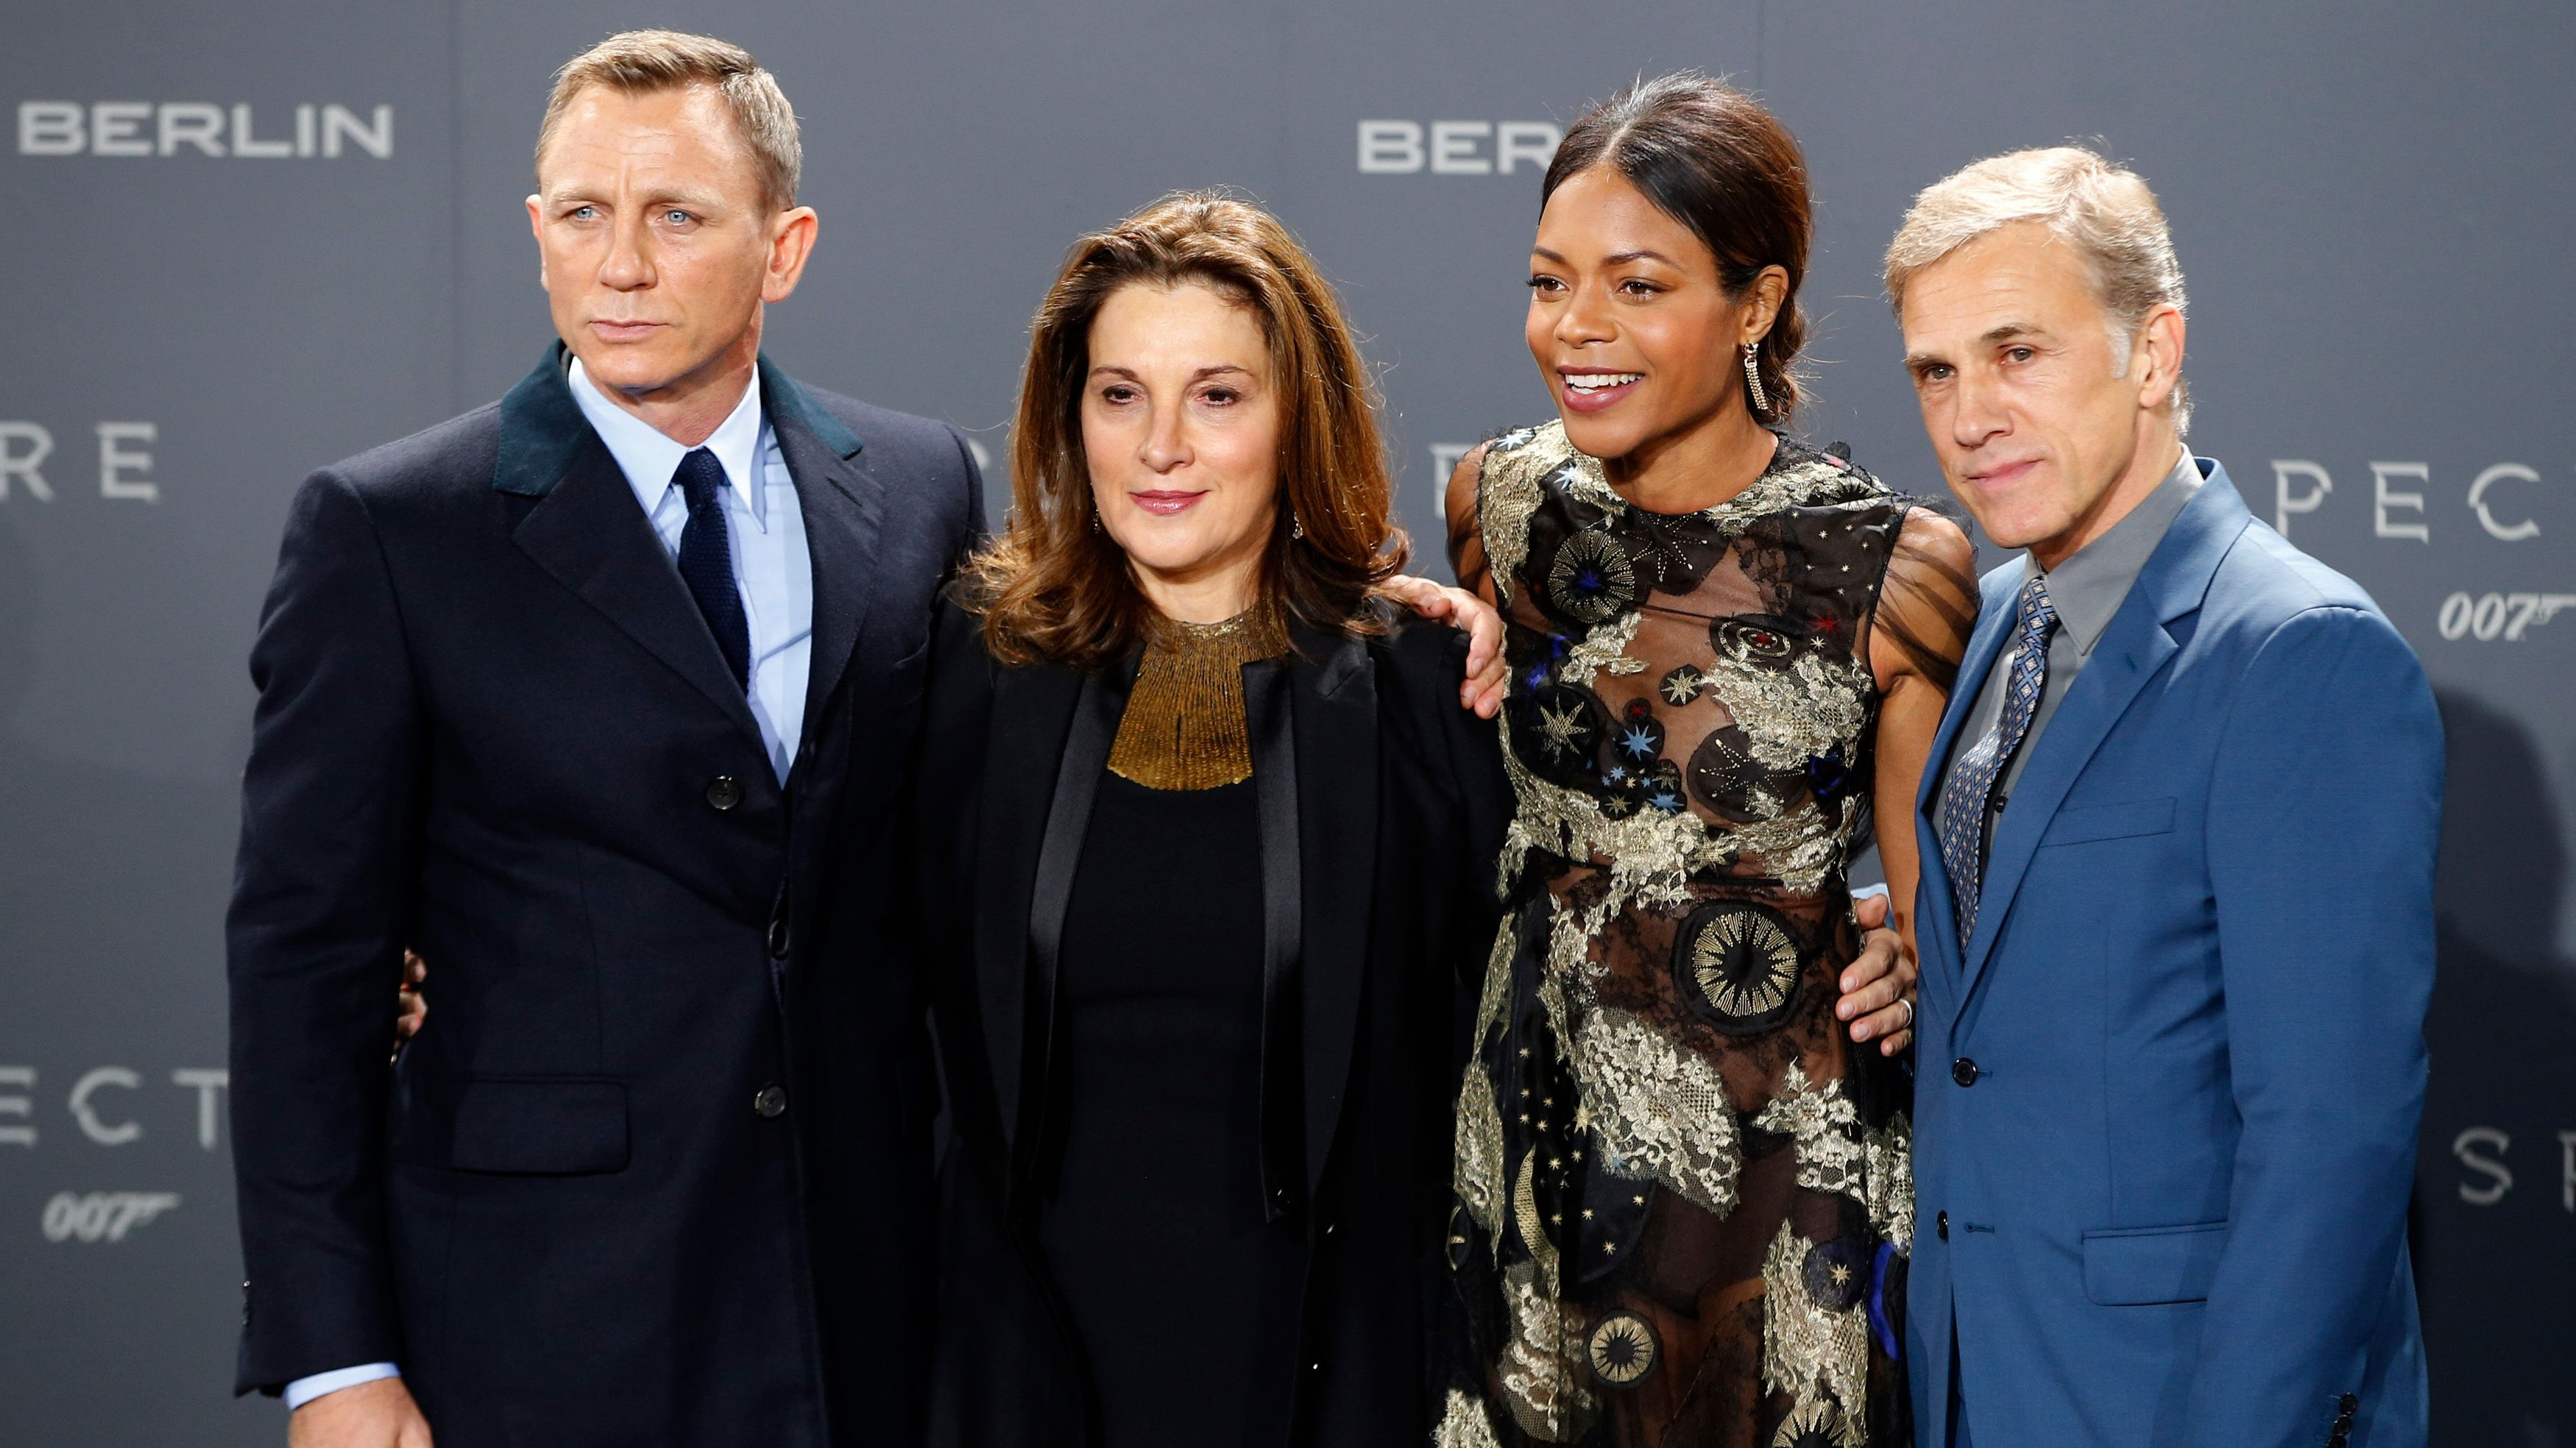 "Actor Daniel Craig, producer Barbara Broccoli, actress Naomie Harris and actor Christoph Waltz (L-R) pose for photographers on the red carpet at the German premiere of the new James Bond 007 film ""Spectre"" in Berlin, Germany, October 28, 2015. REUTERS/Fabrizio Bensch - LR1EBAS1GXB62"